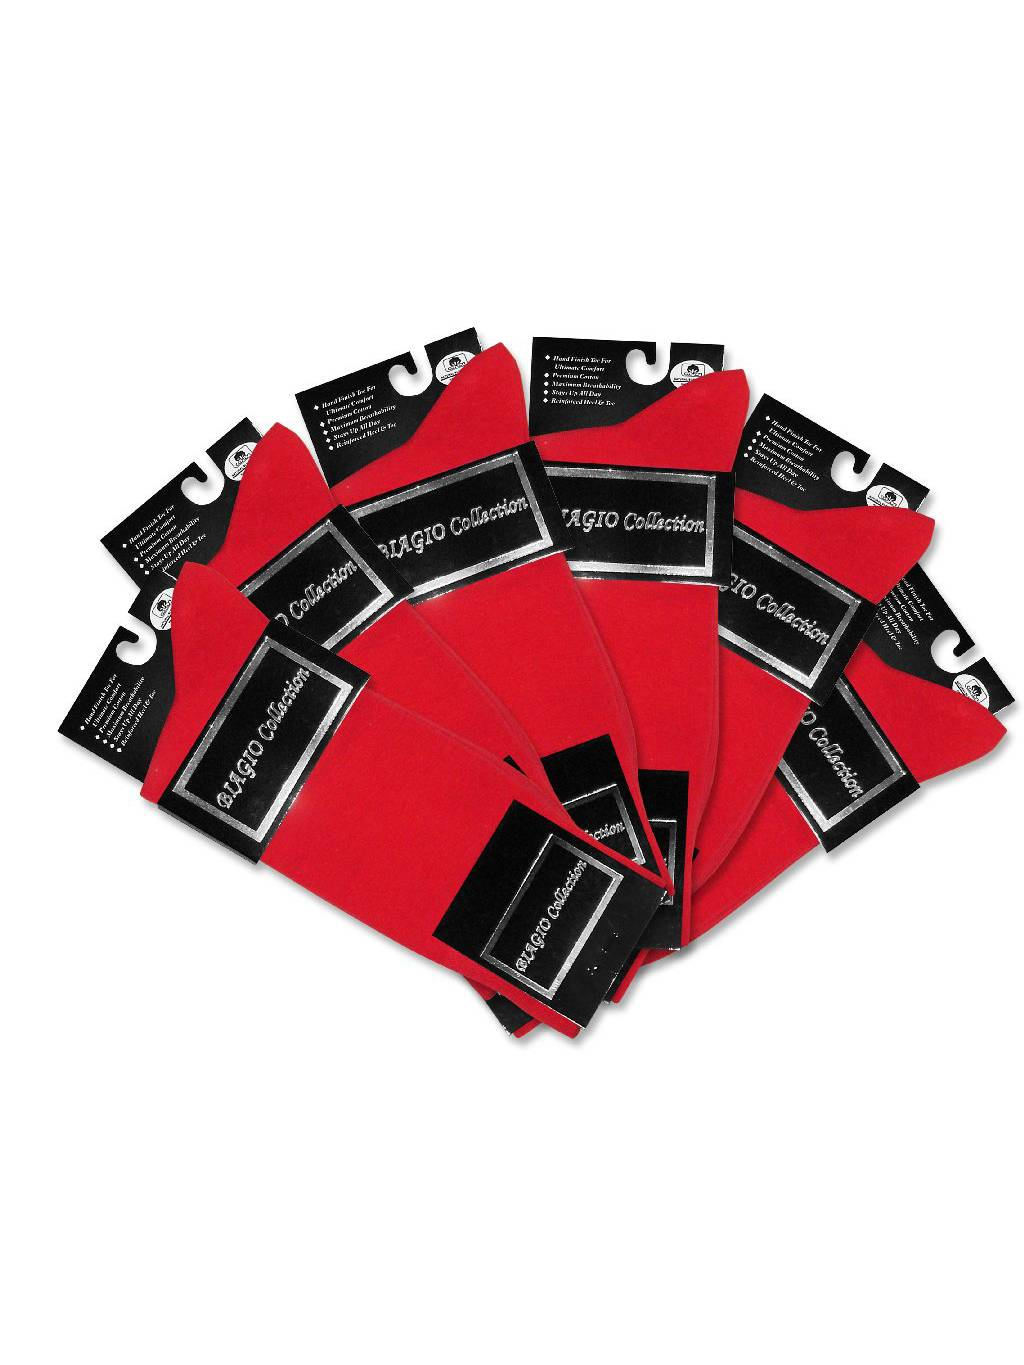 6 Pair of Biagio Solid RED Color Men's COTTON Dress SOCKS